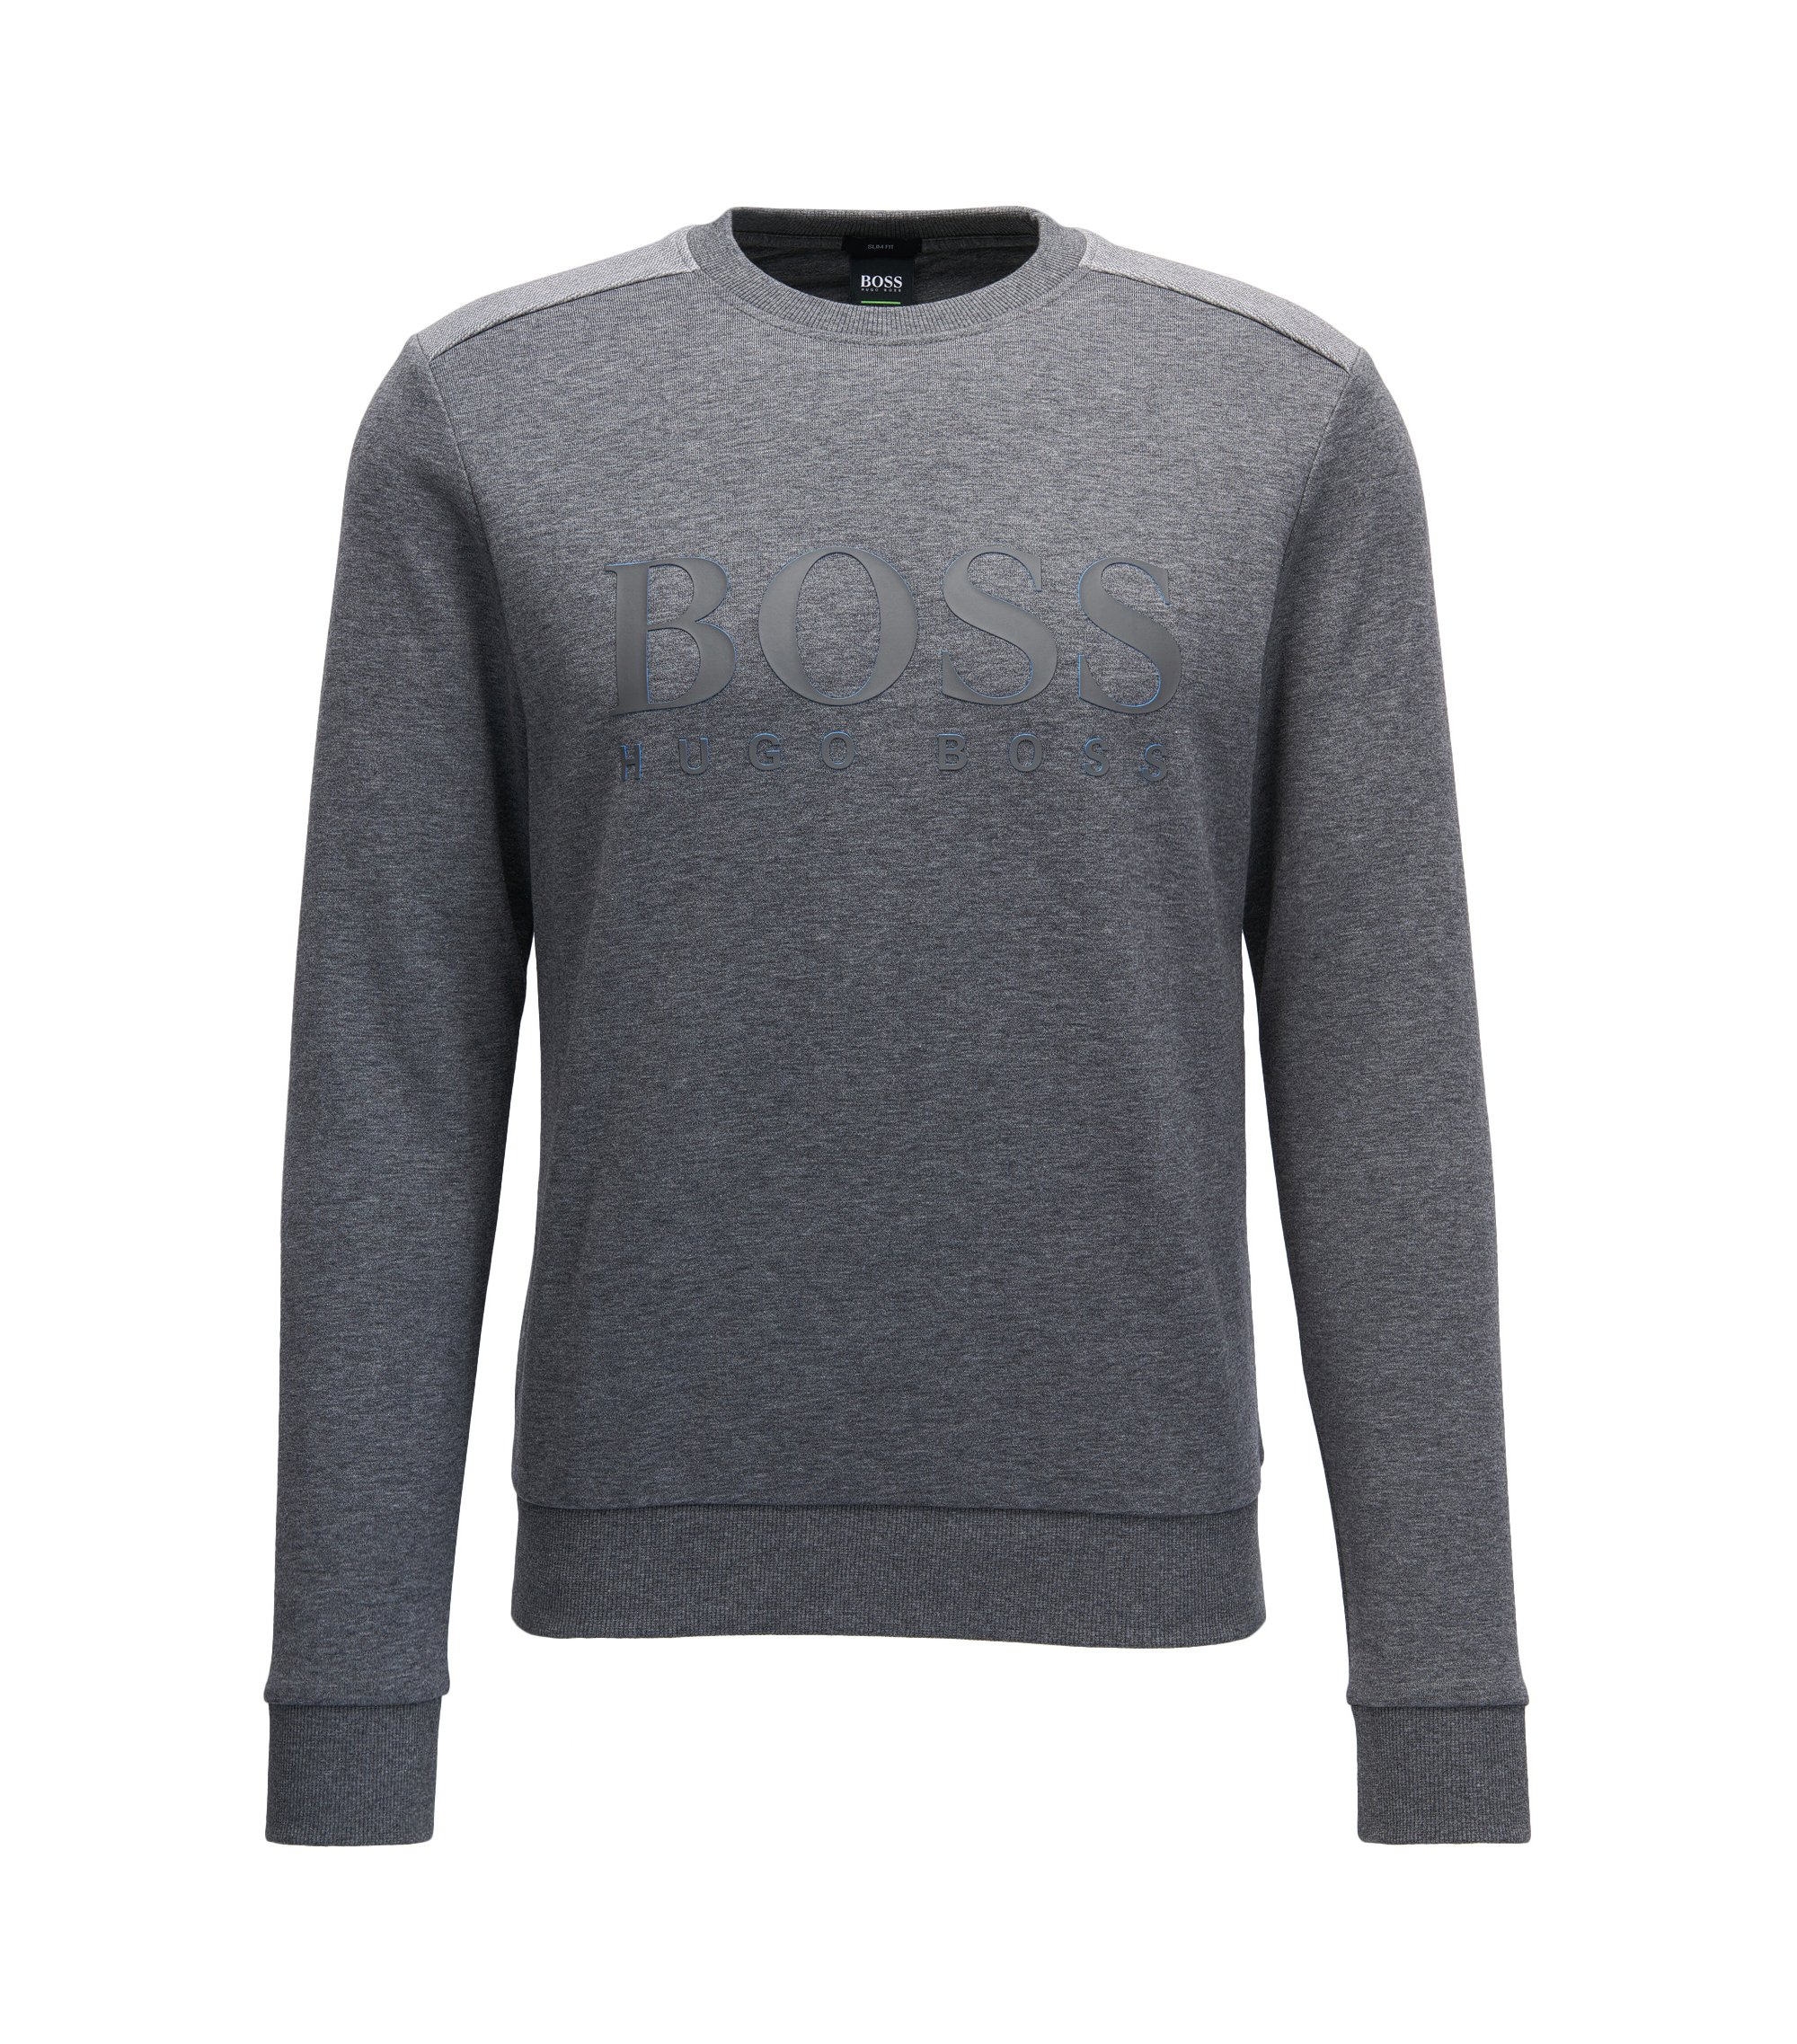 Cotton-blend sweater with two-tone logo, Grey